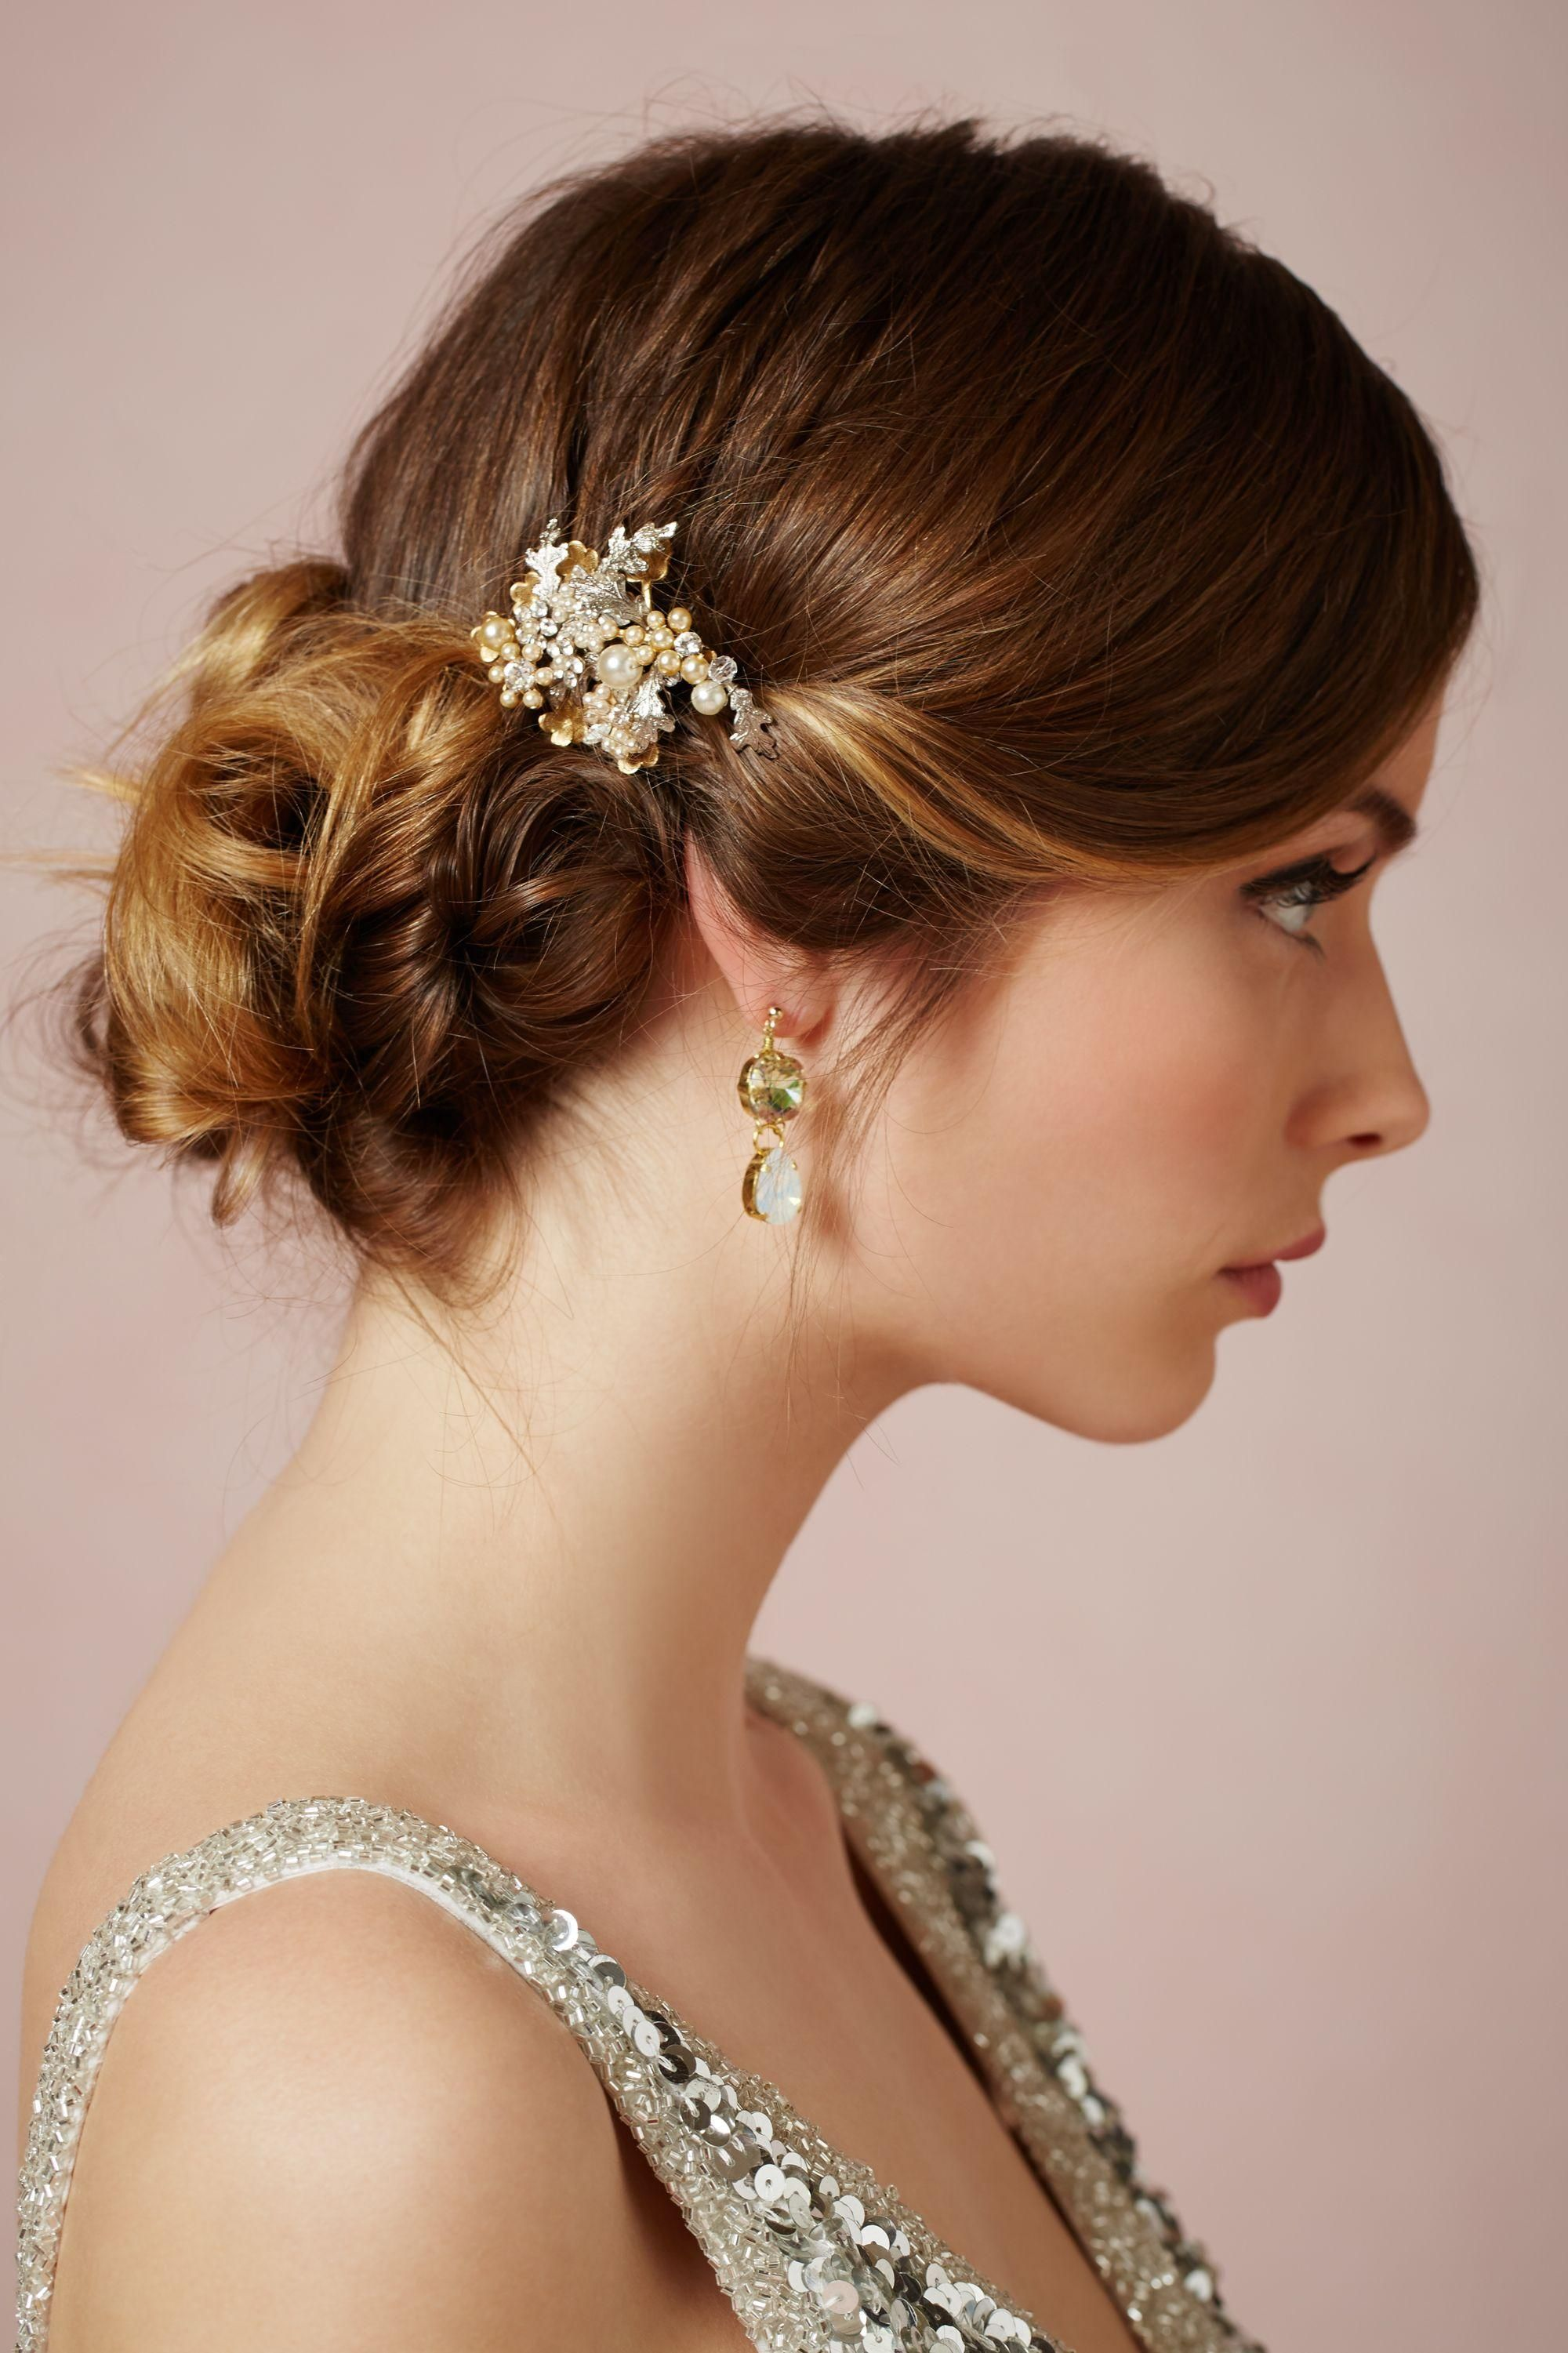 a vintage bridal hairstyle with a small sparkling comb tucked into